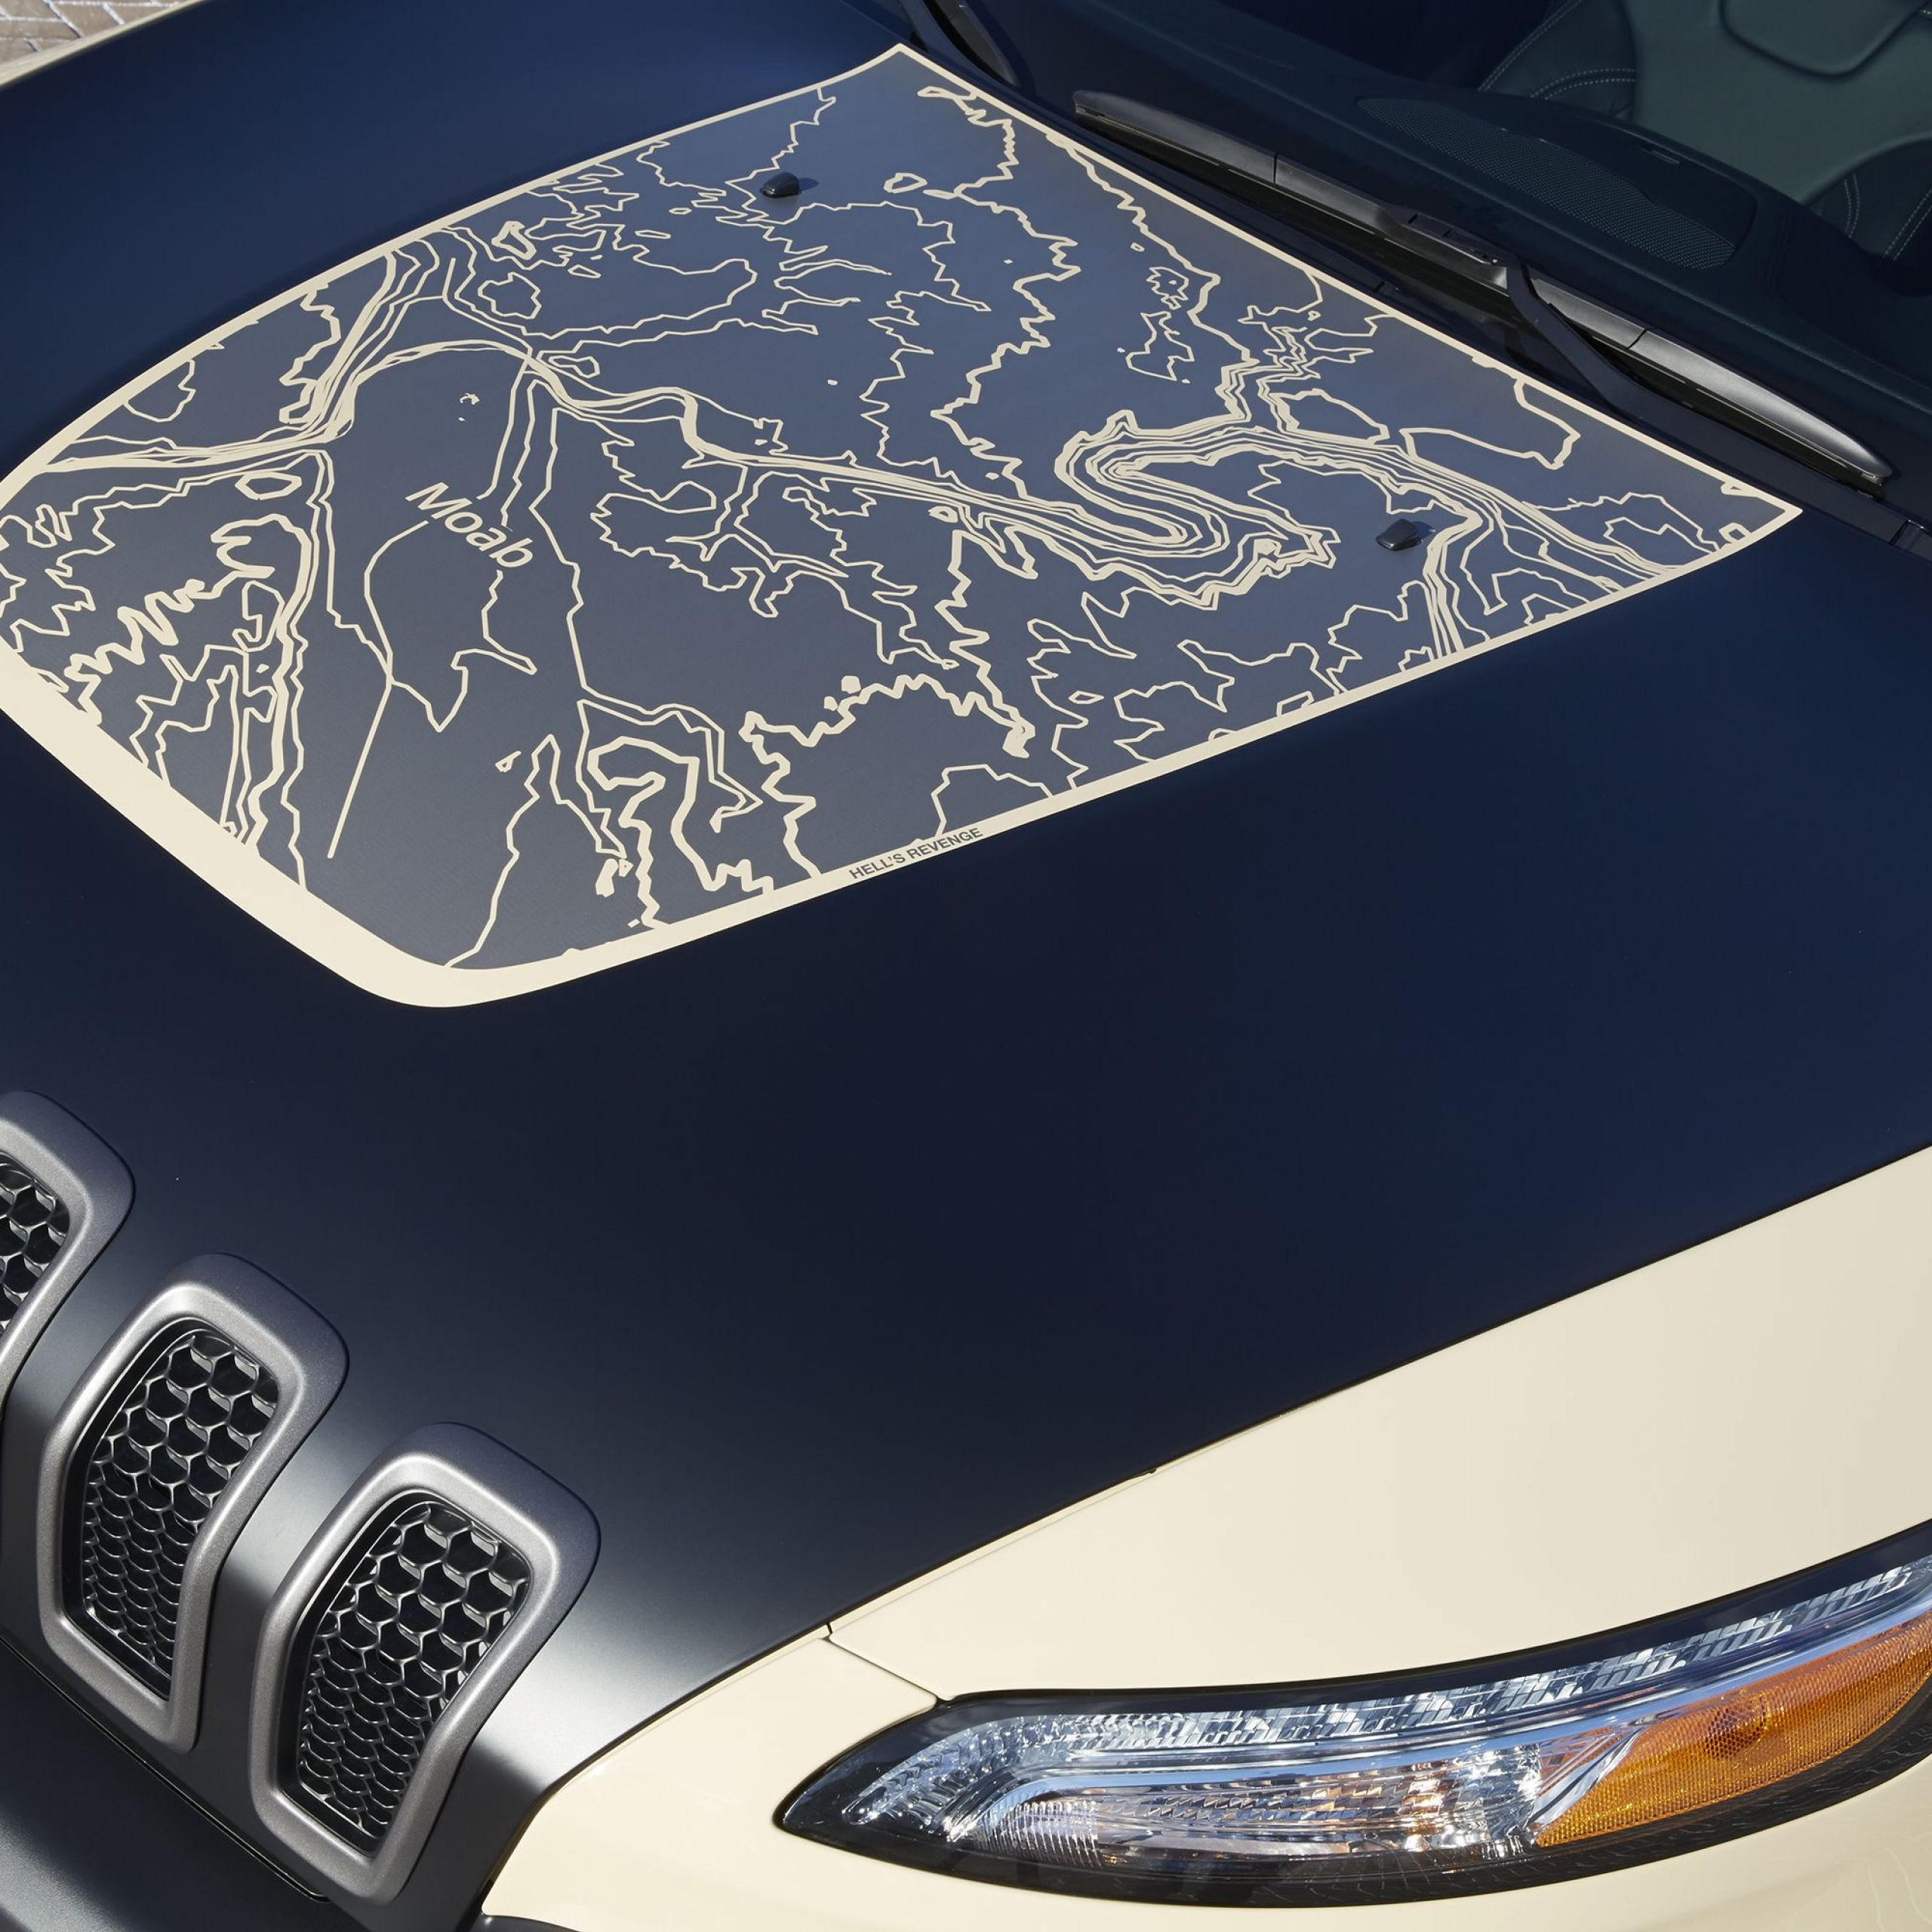 2014 Jeep Cherokee Best Of the Cherokee Canyon Trail S Desert Tan Exterior Paint is